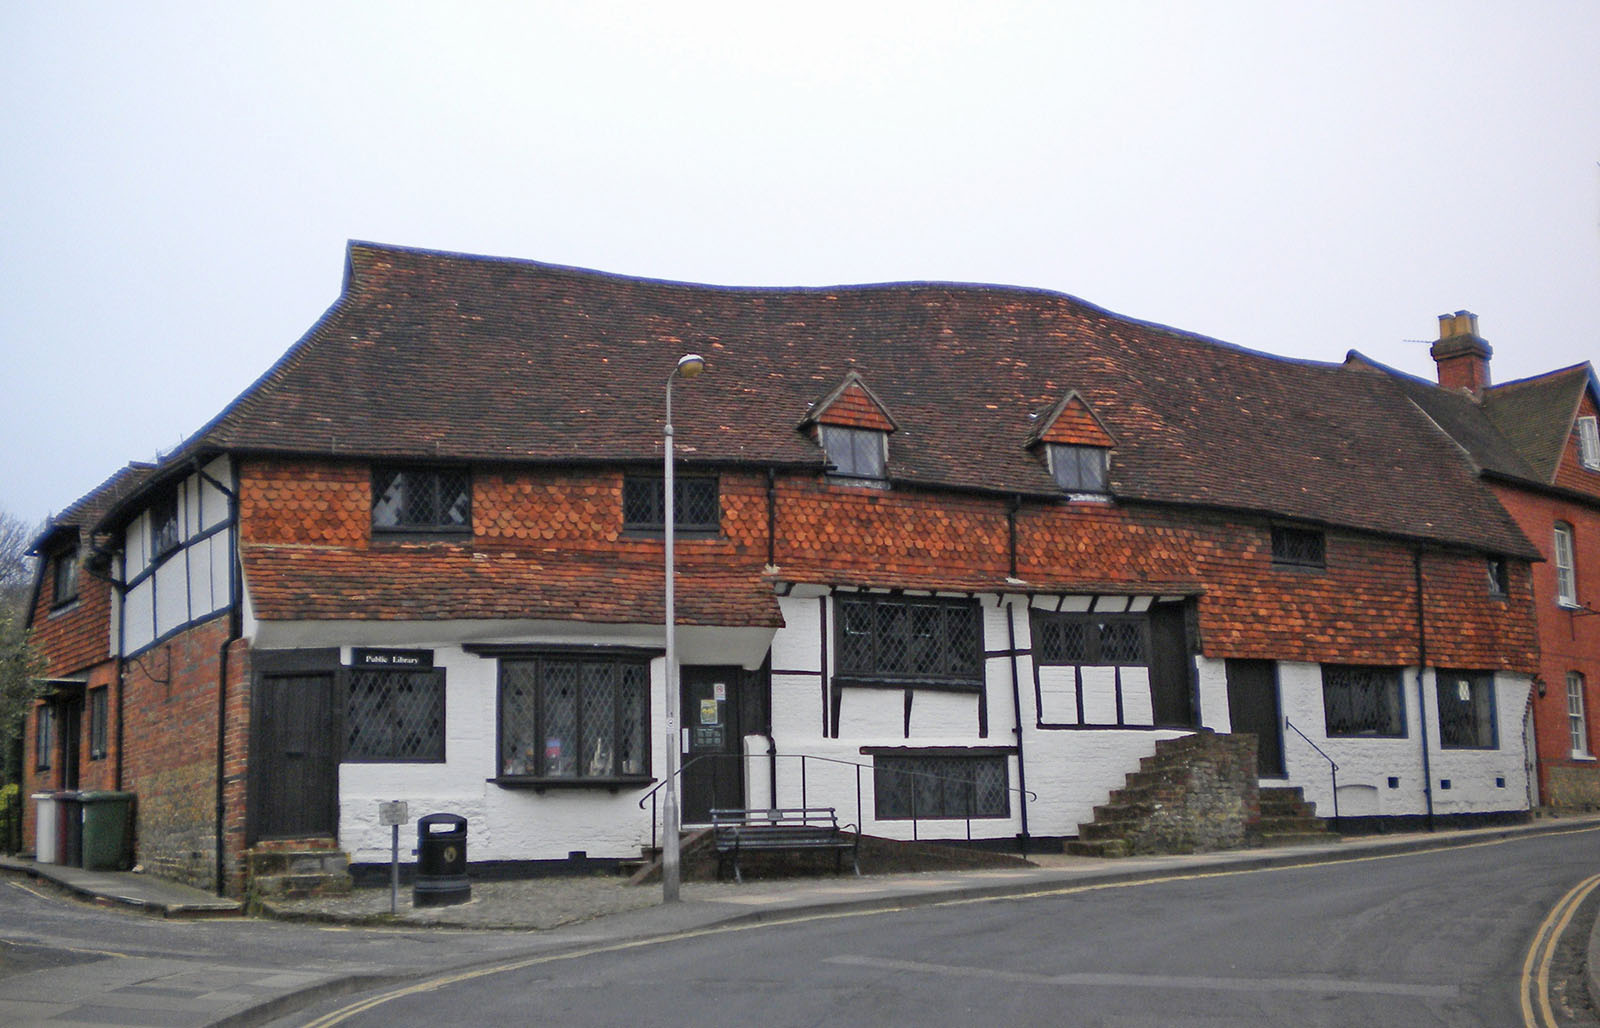 The library in Midhurst.